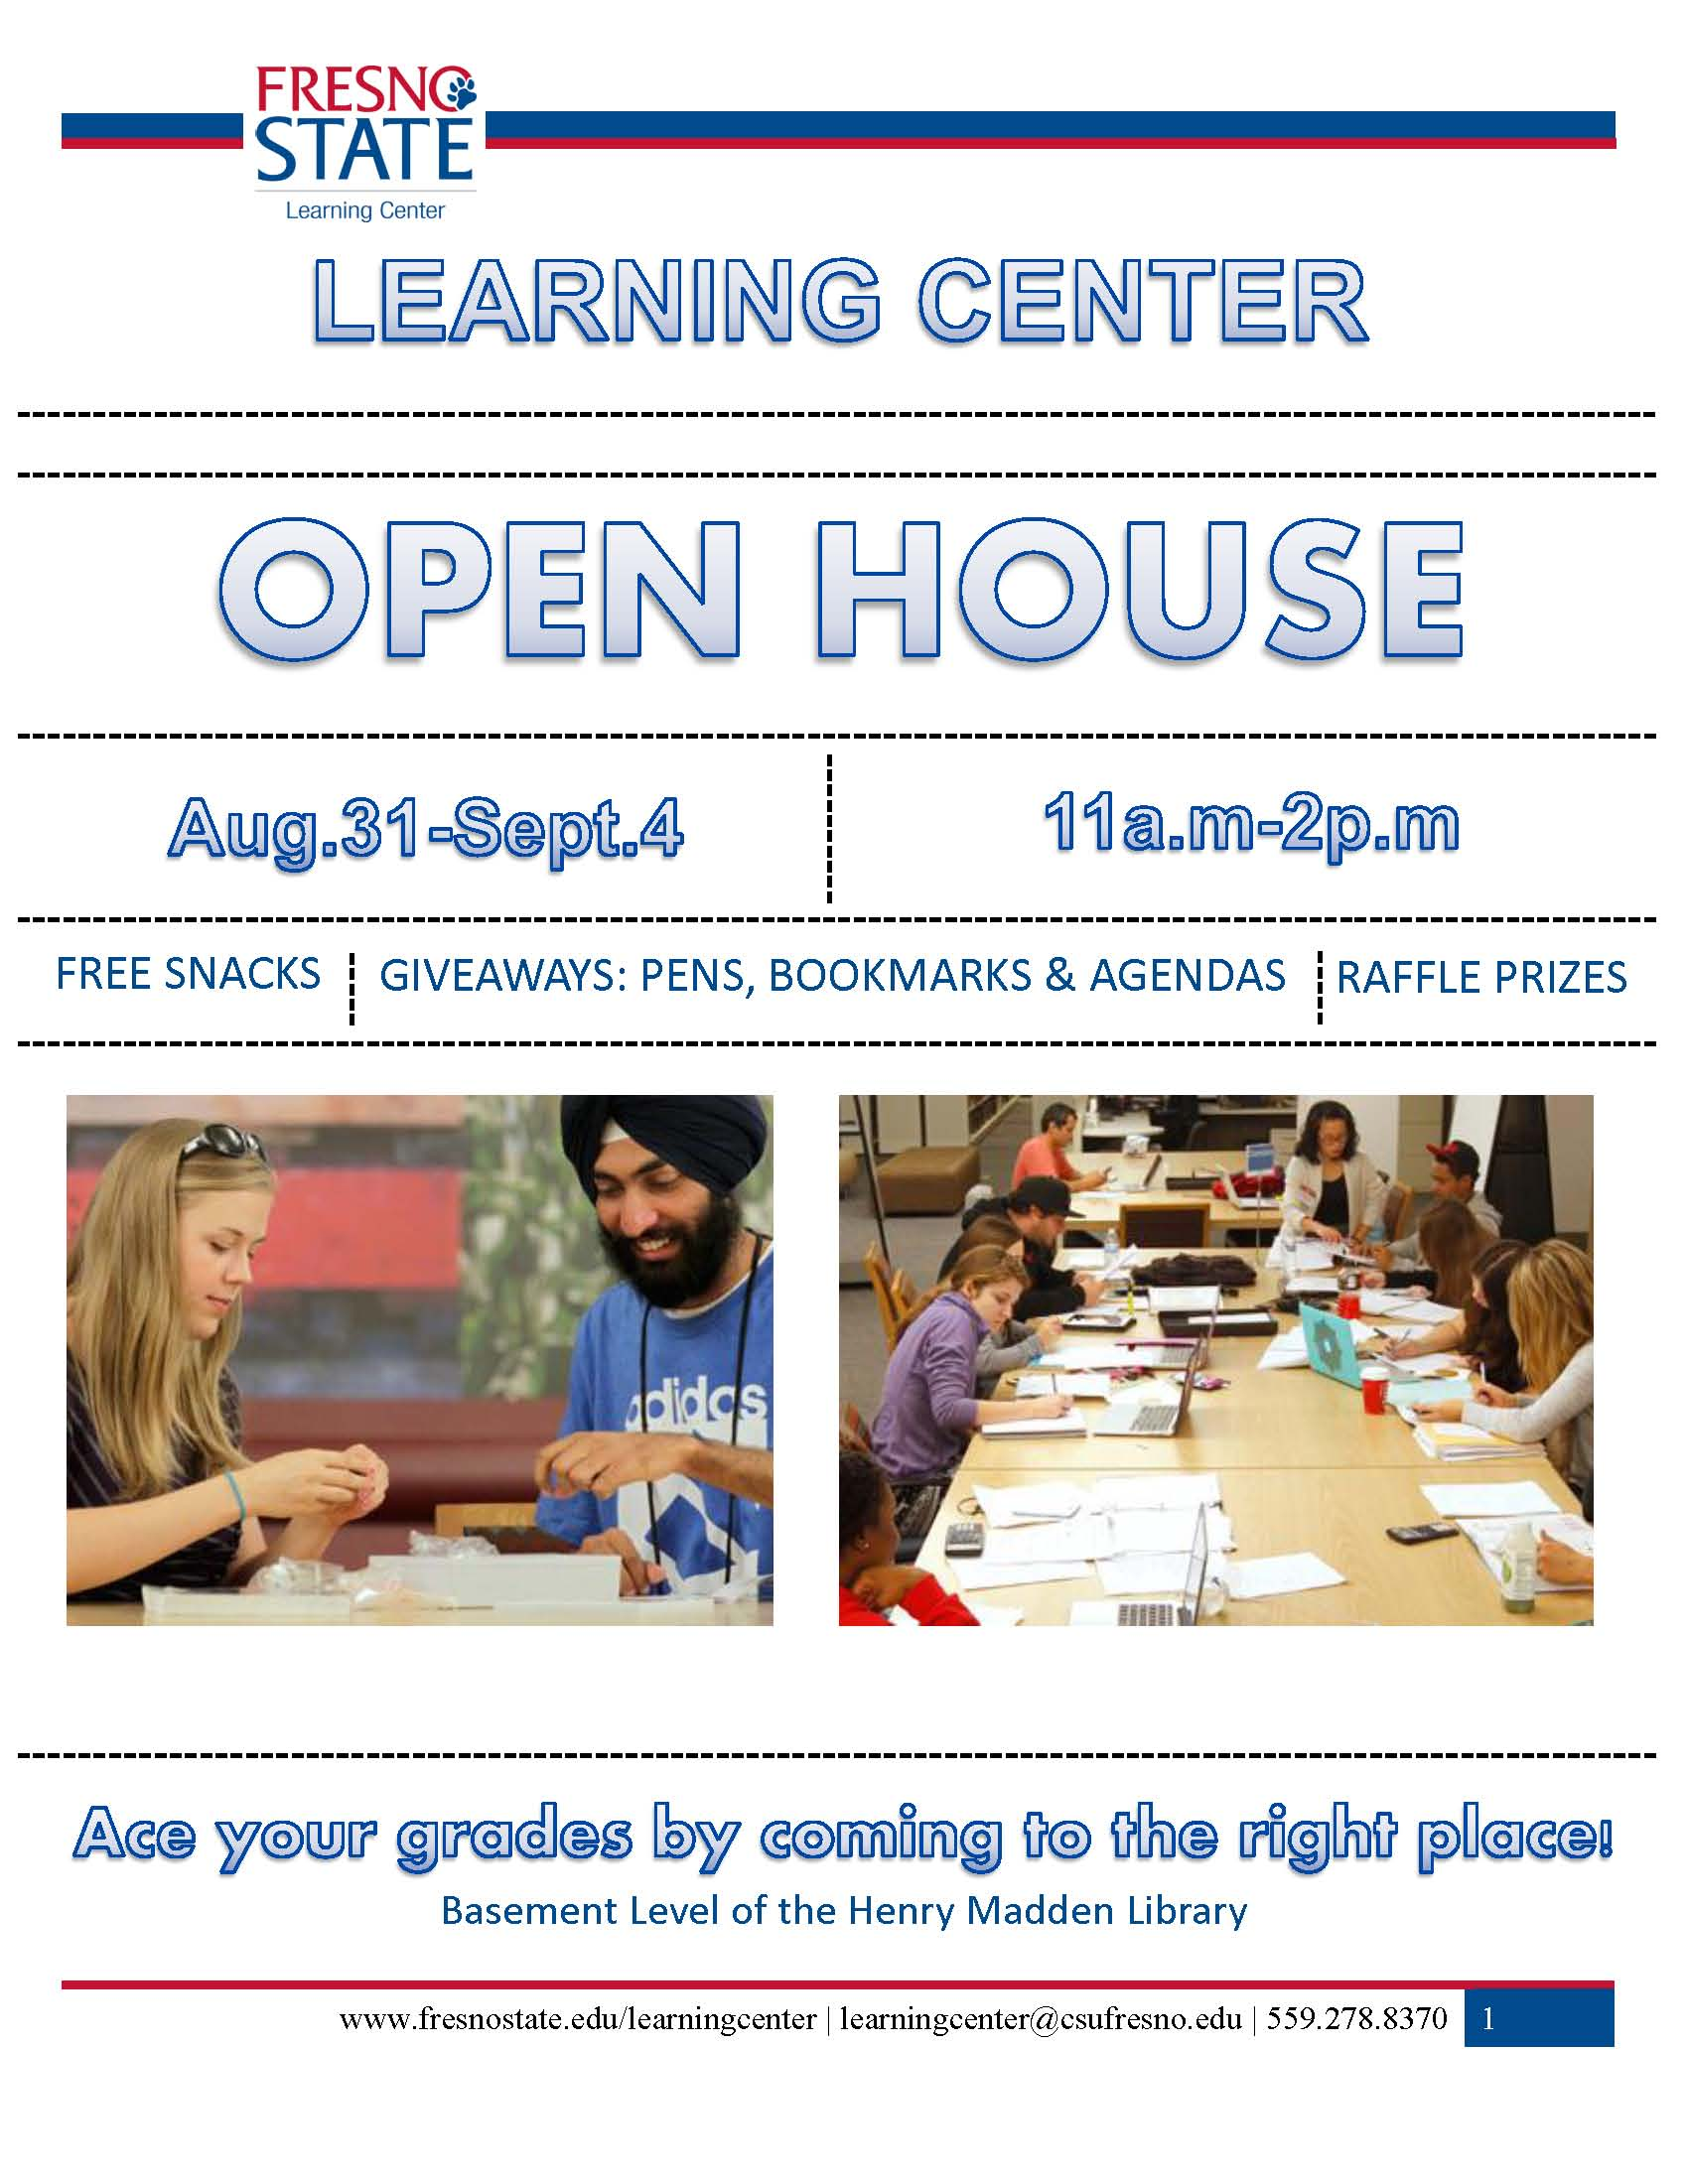 Learning Center Open House Flyer